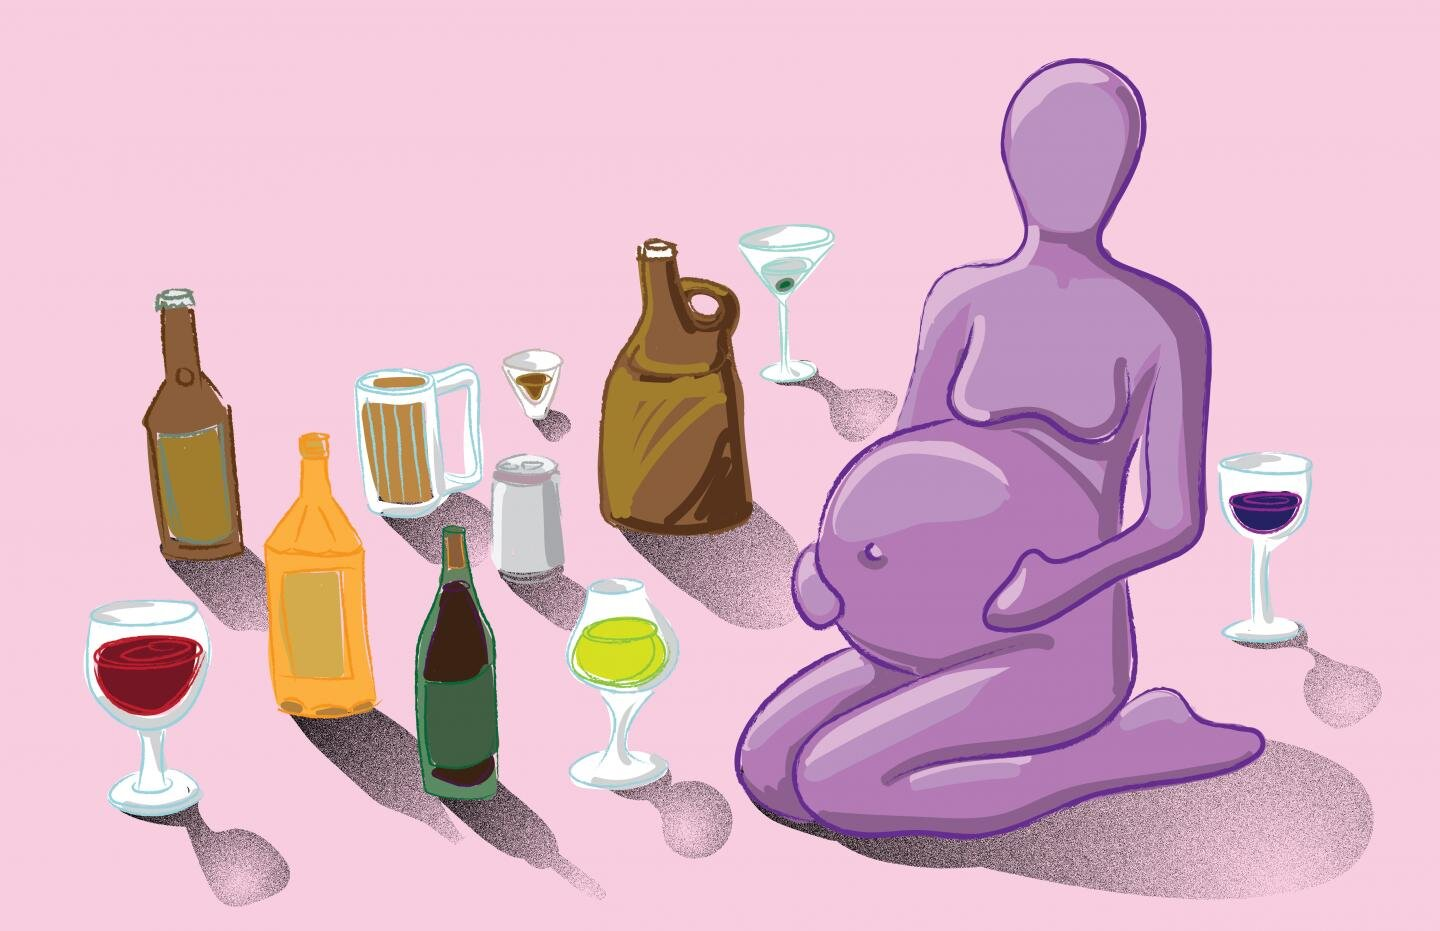 About 8 percent of West Virginia babies are exposed to alcohol shortly before birth